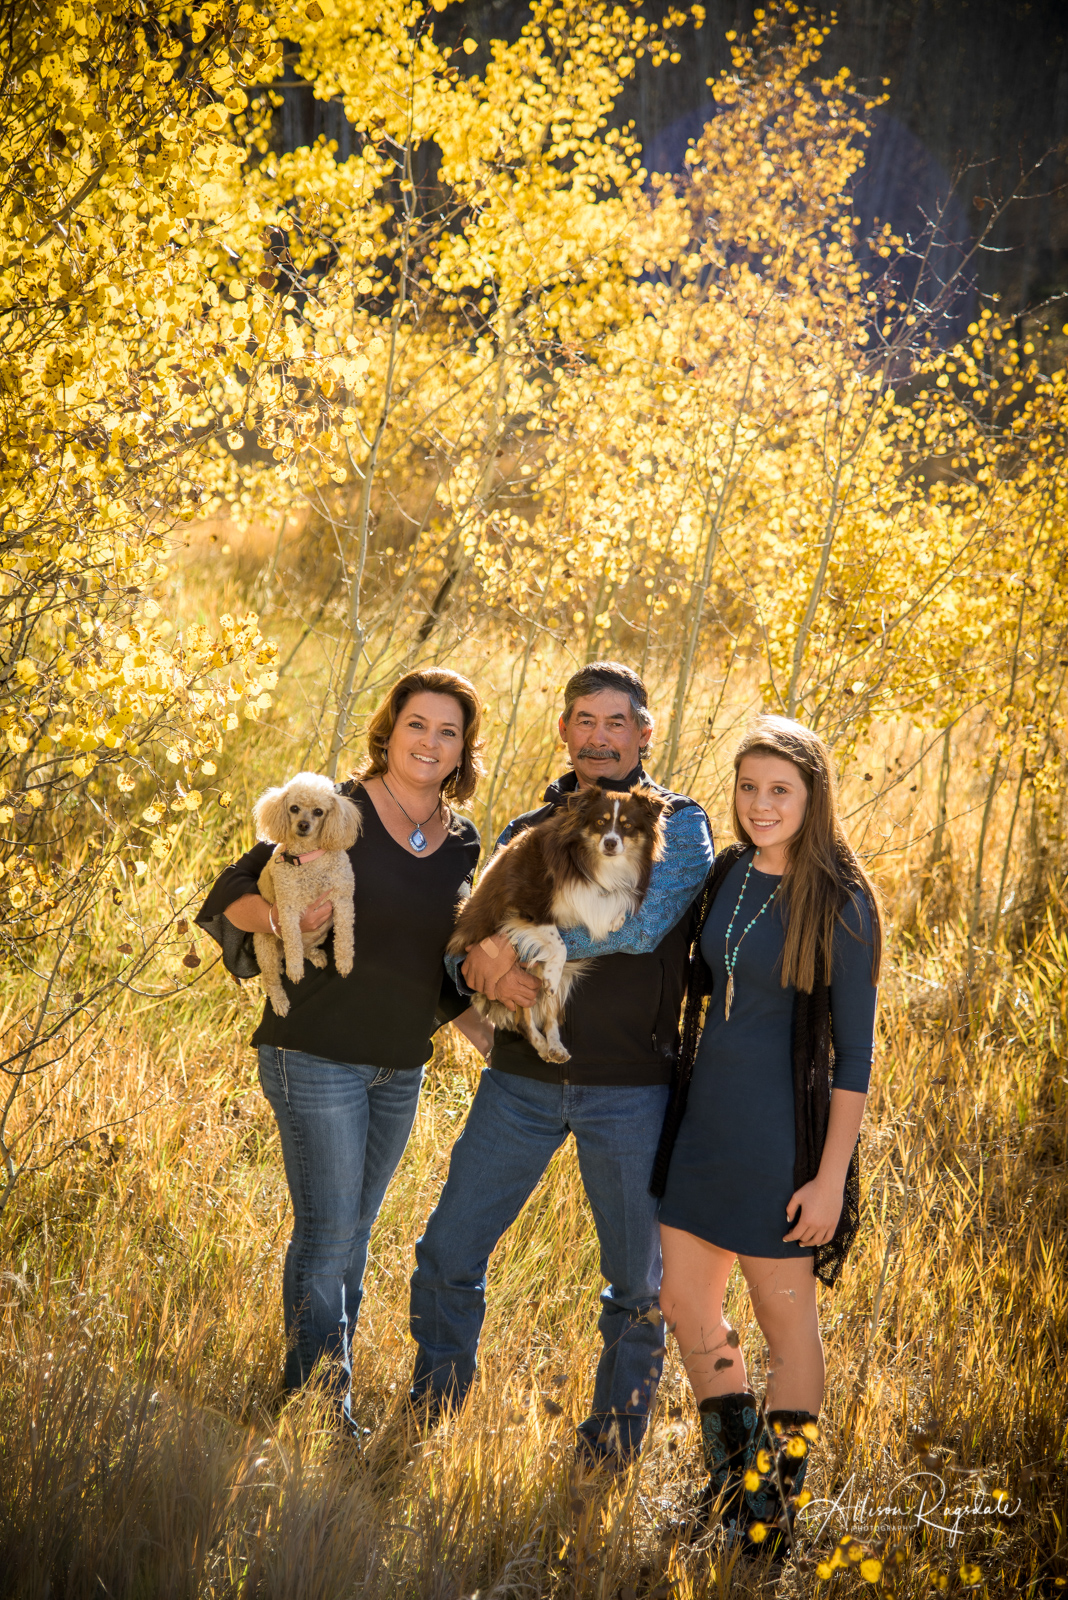 Gallegos Family Portraits | Durango Colorado